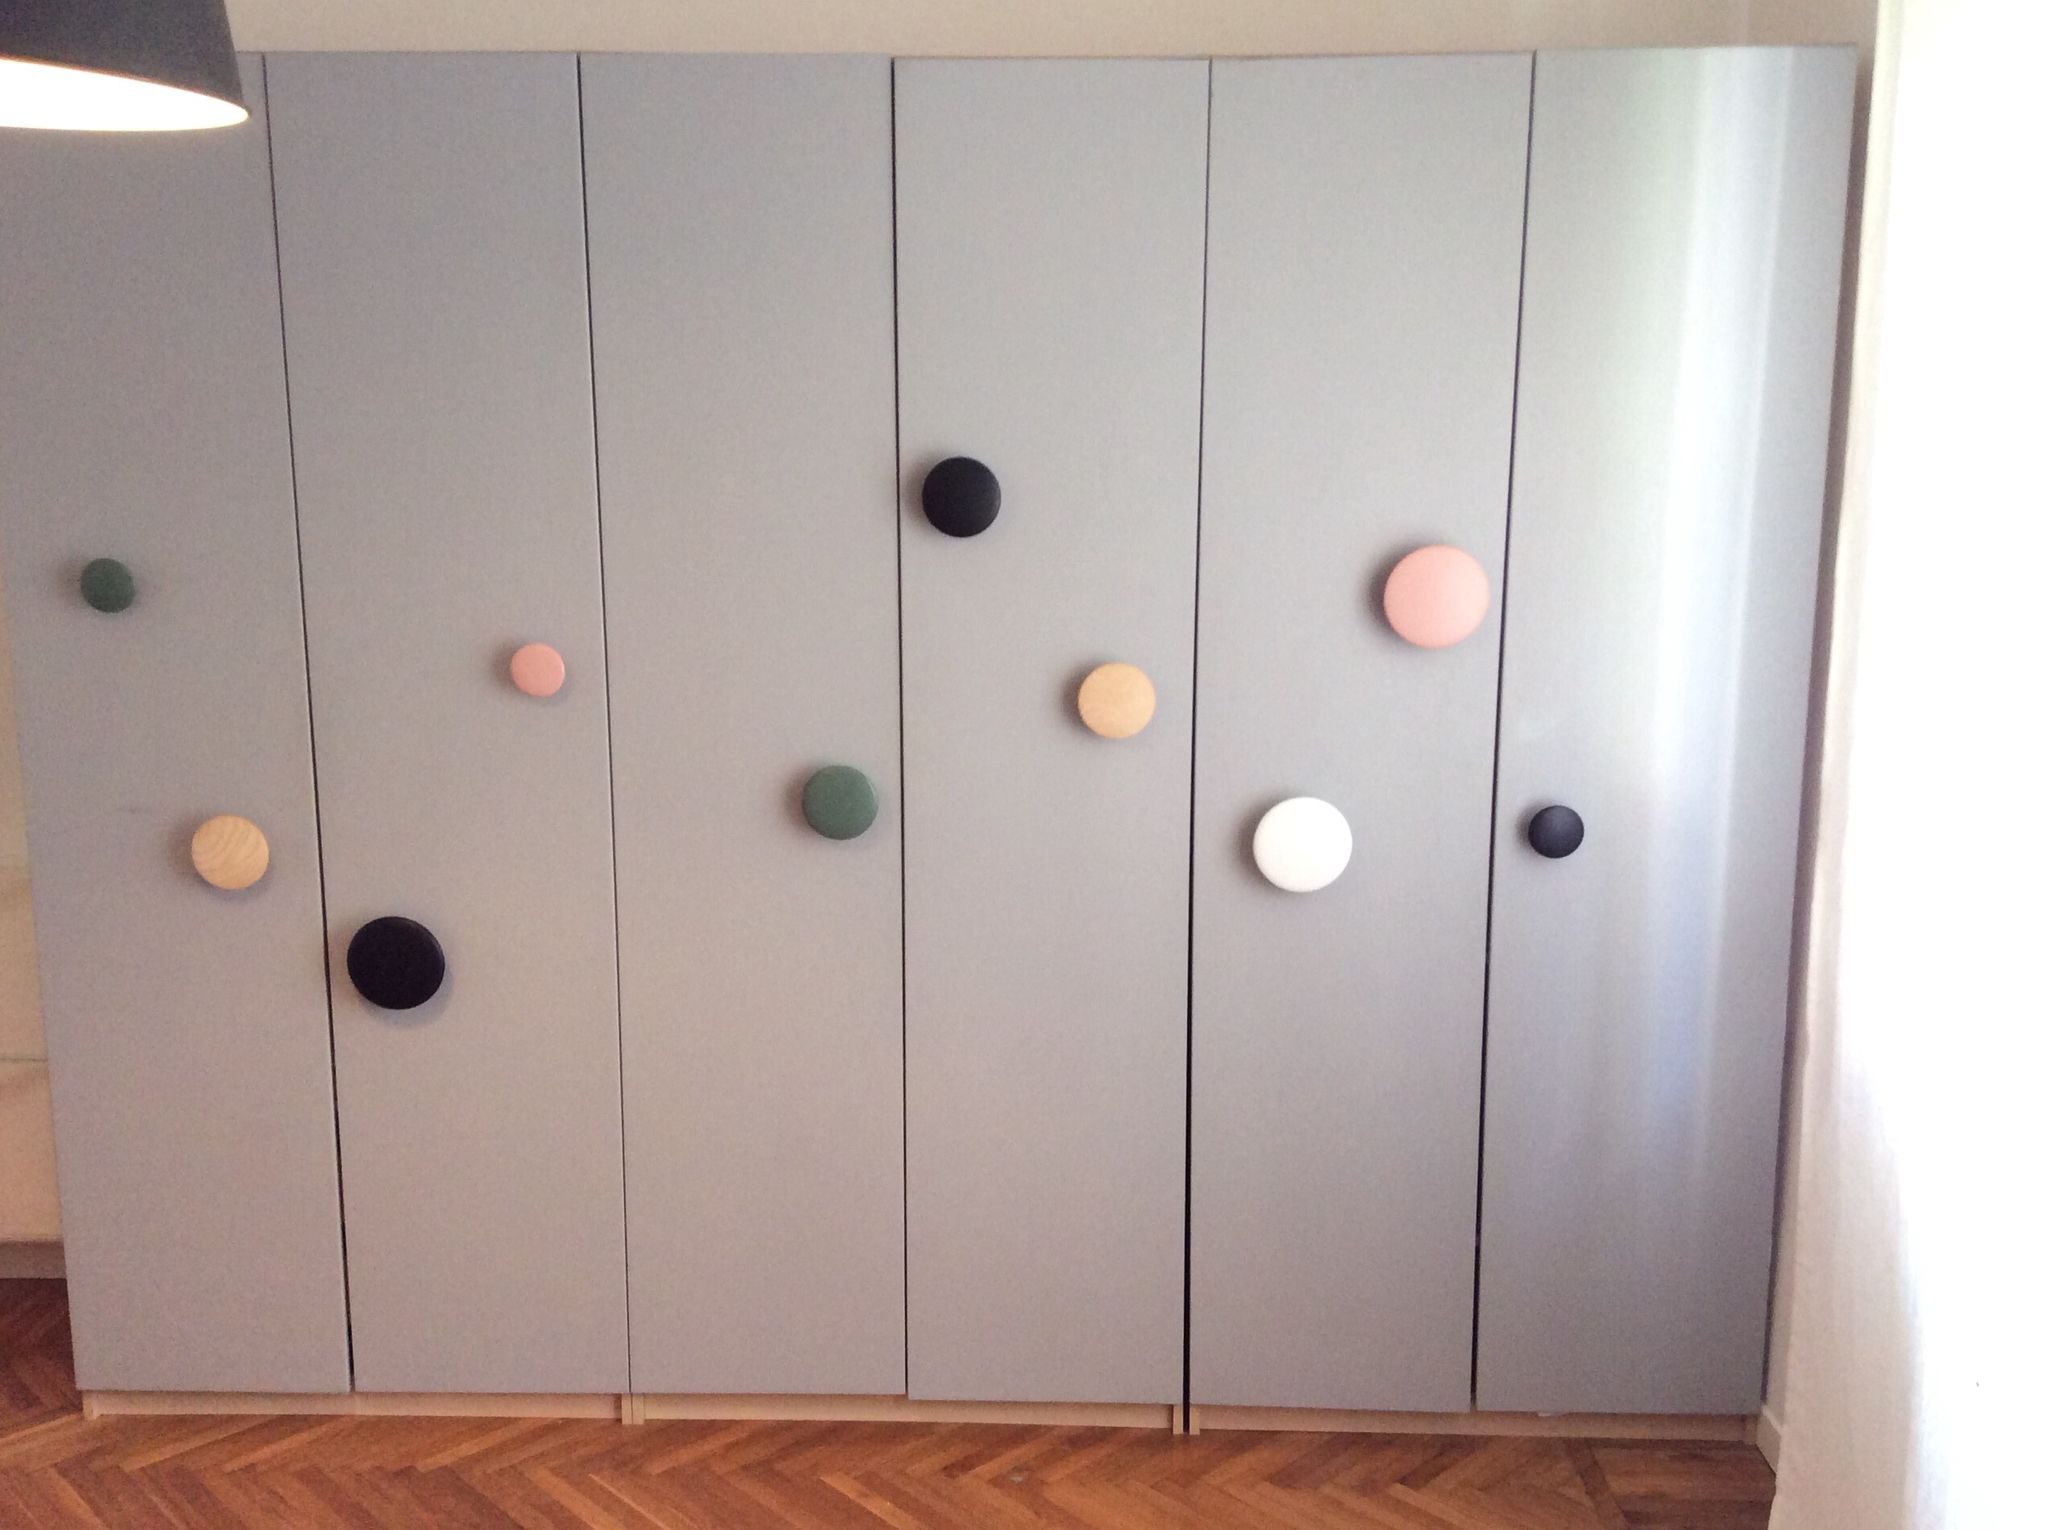 Hoekkast Ikea Pax Ikea Pax Hack With Gray Paint And Muuto Dots Hooks As Handles By